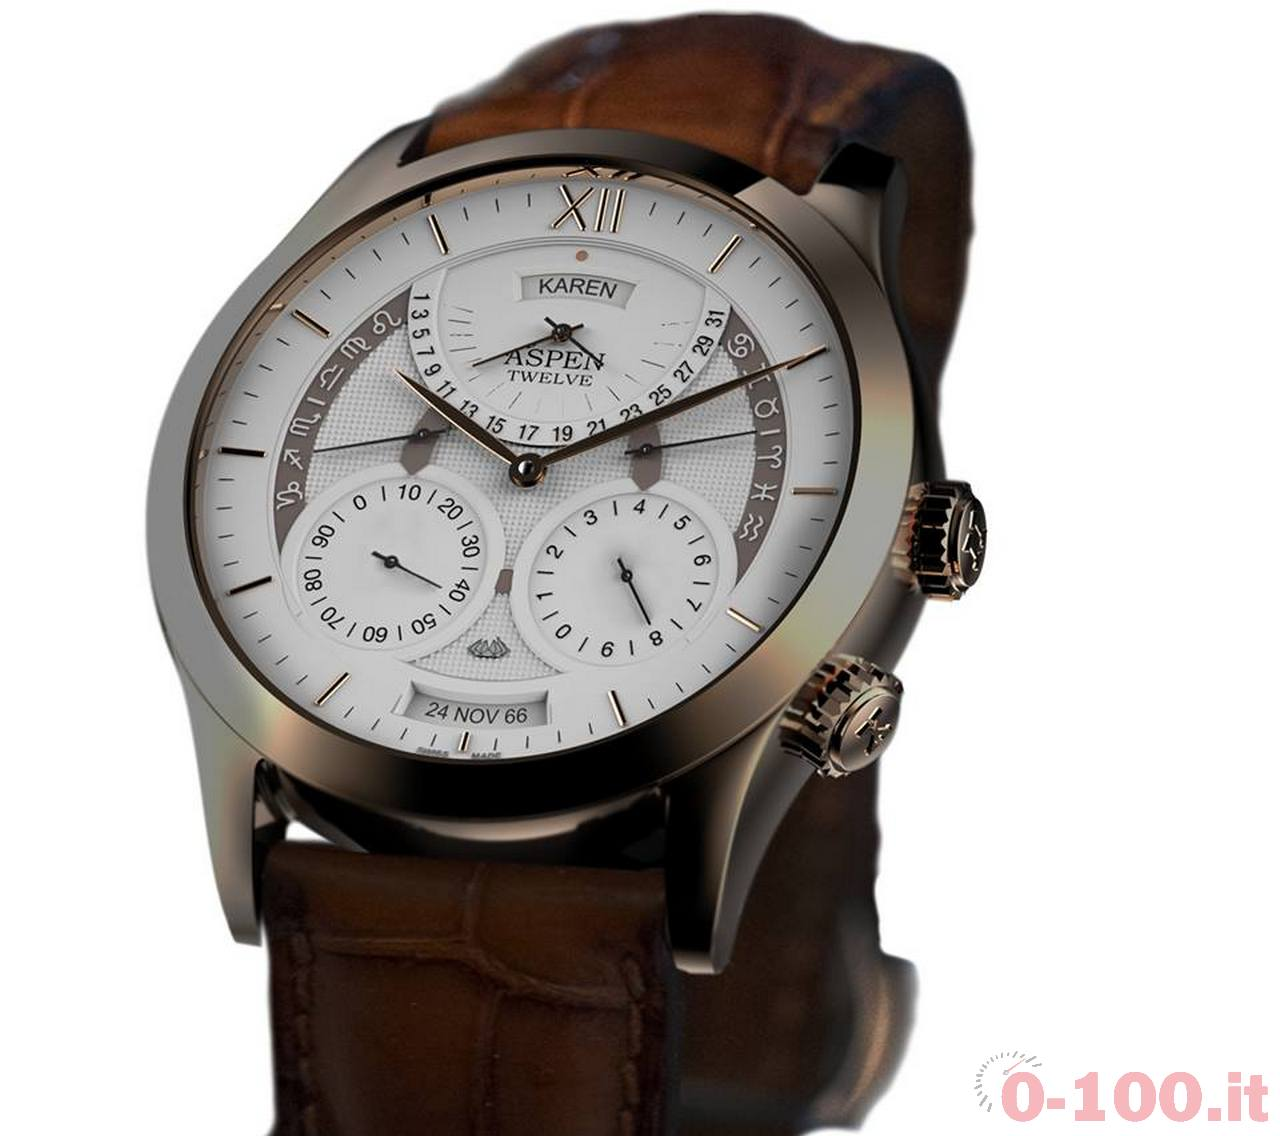 aspen-jewelry-watches-aspen-xii-personal-calendar-watch-zodiac-prezzo-price-0-100_7